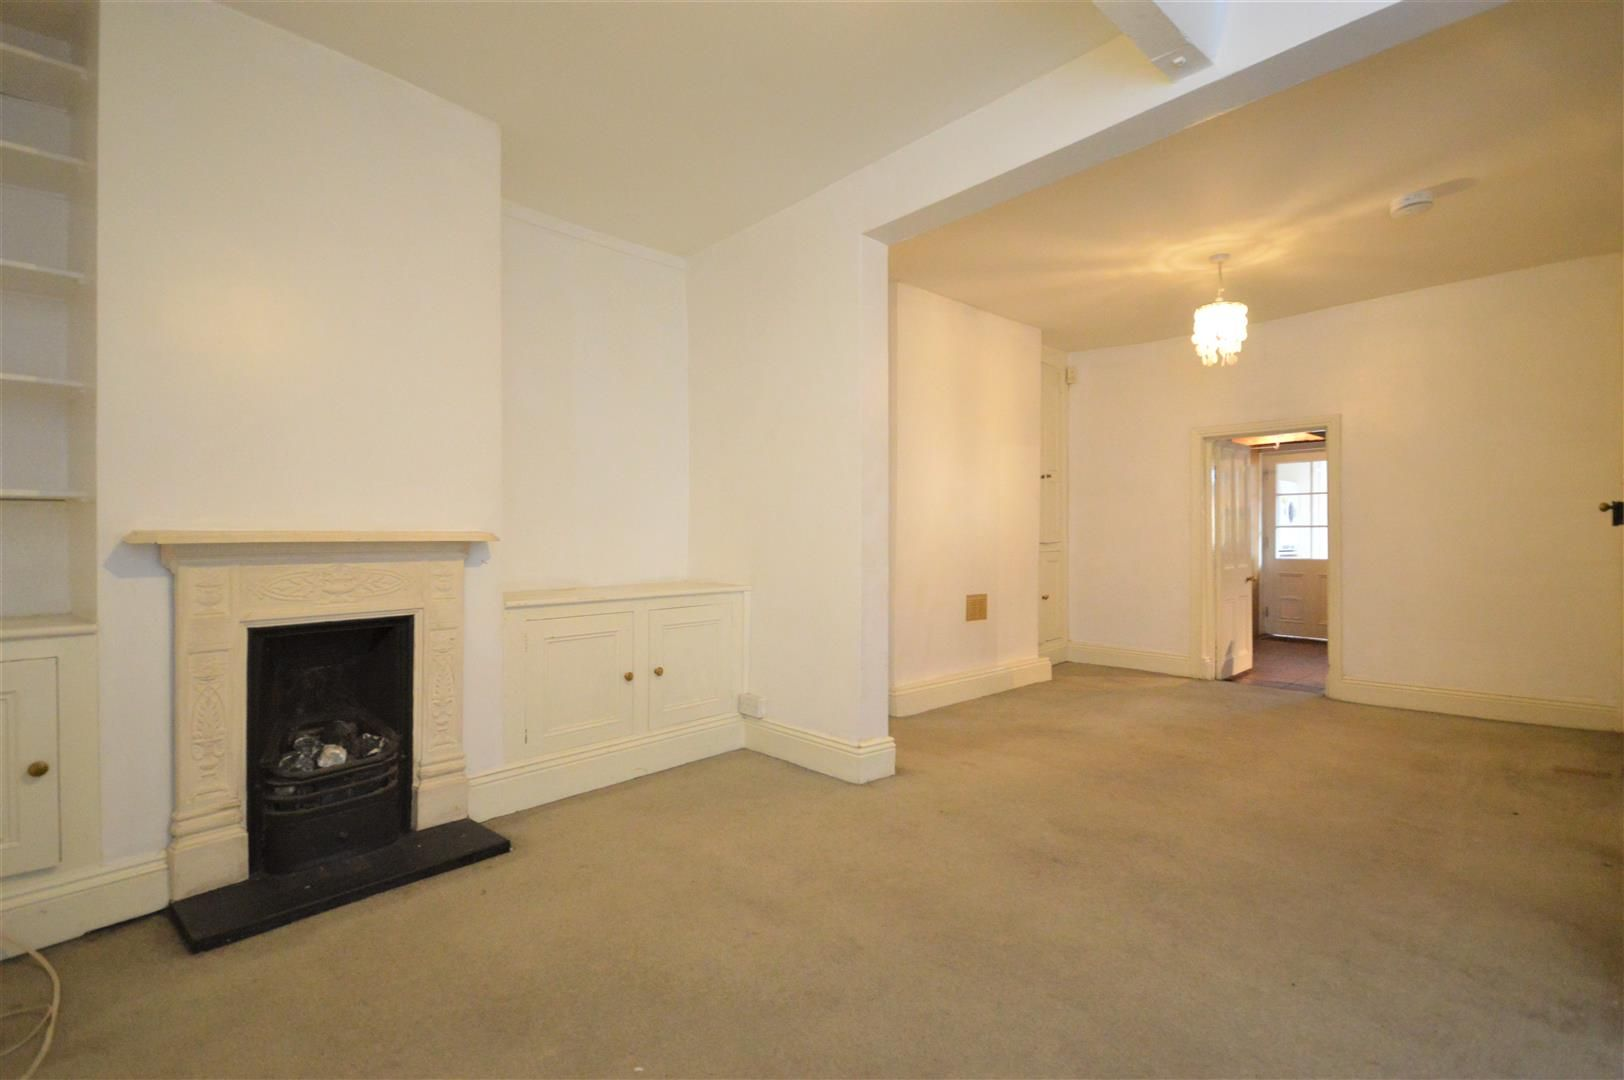 4 bed terraced for sale in Leominster  - Property Image 4